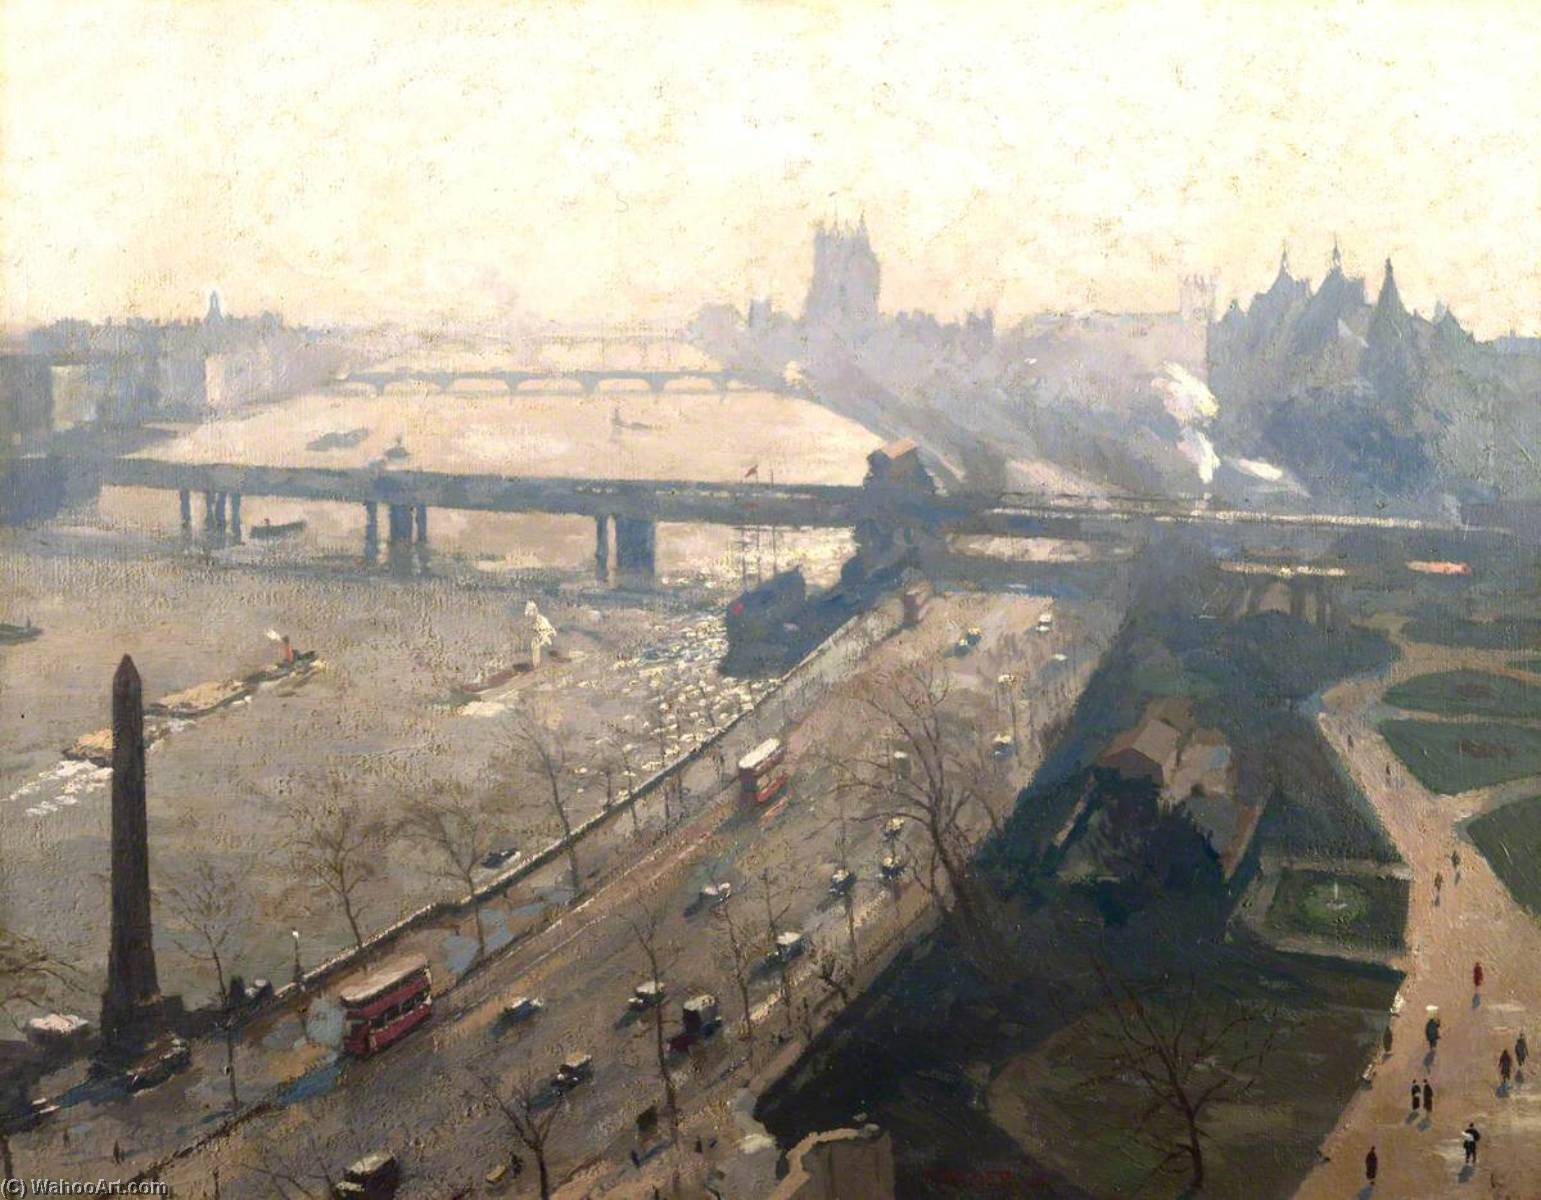 The Embankment, Westminster, 1934 by Donald Chisholm Towner | WahooArt.com